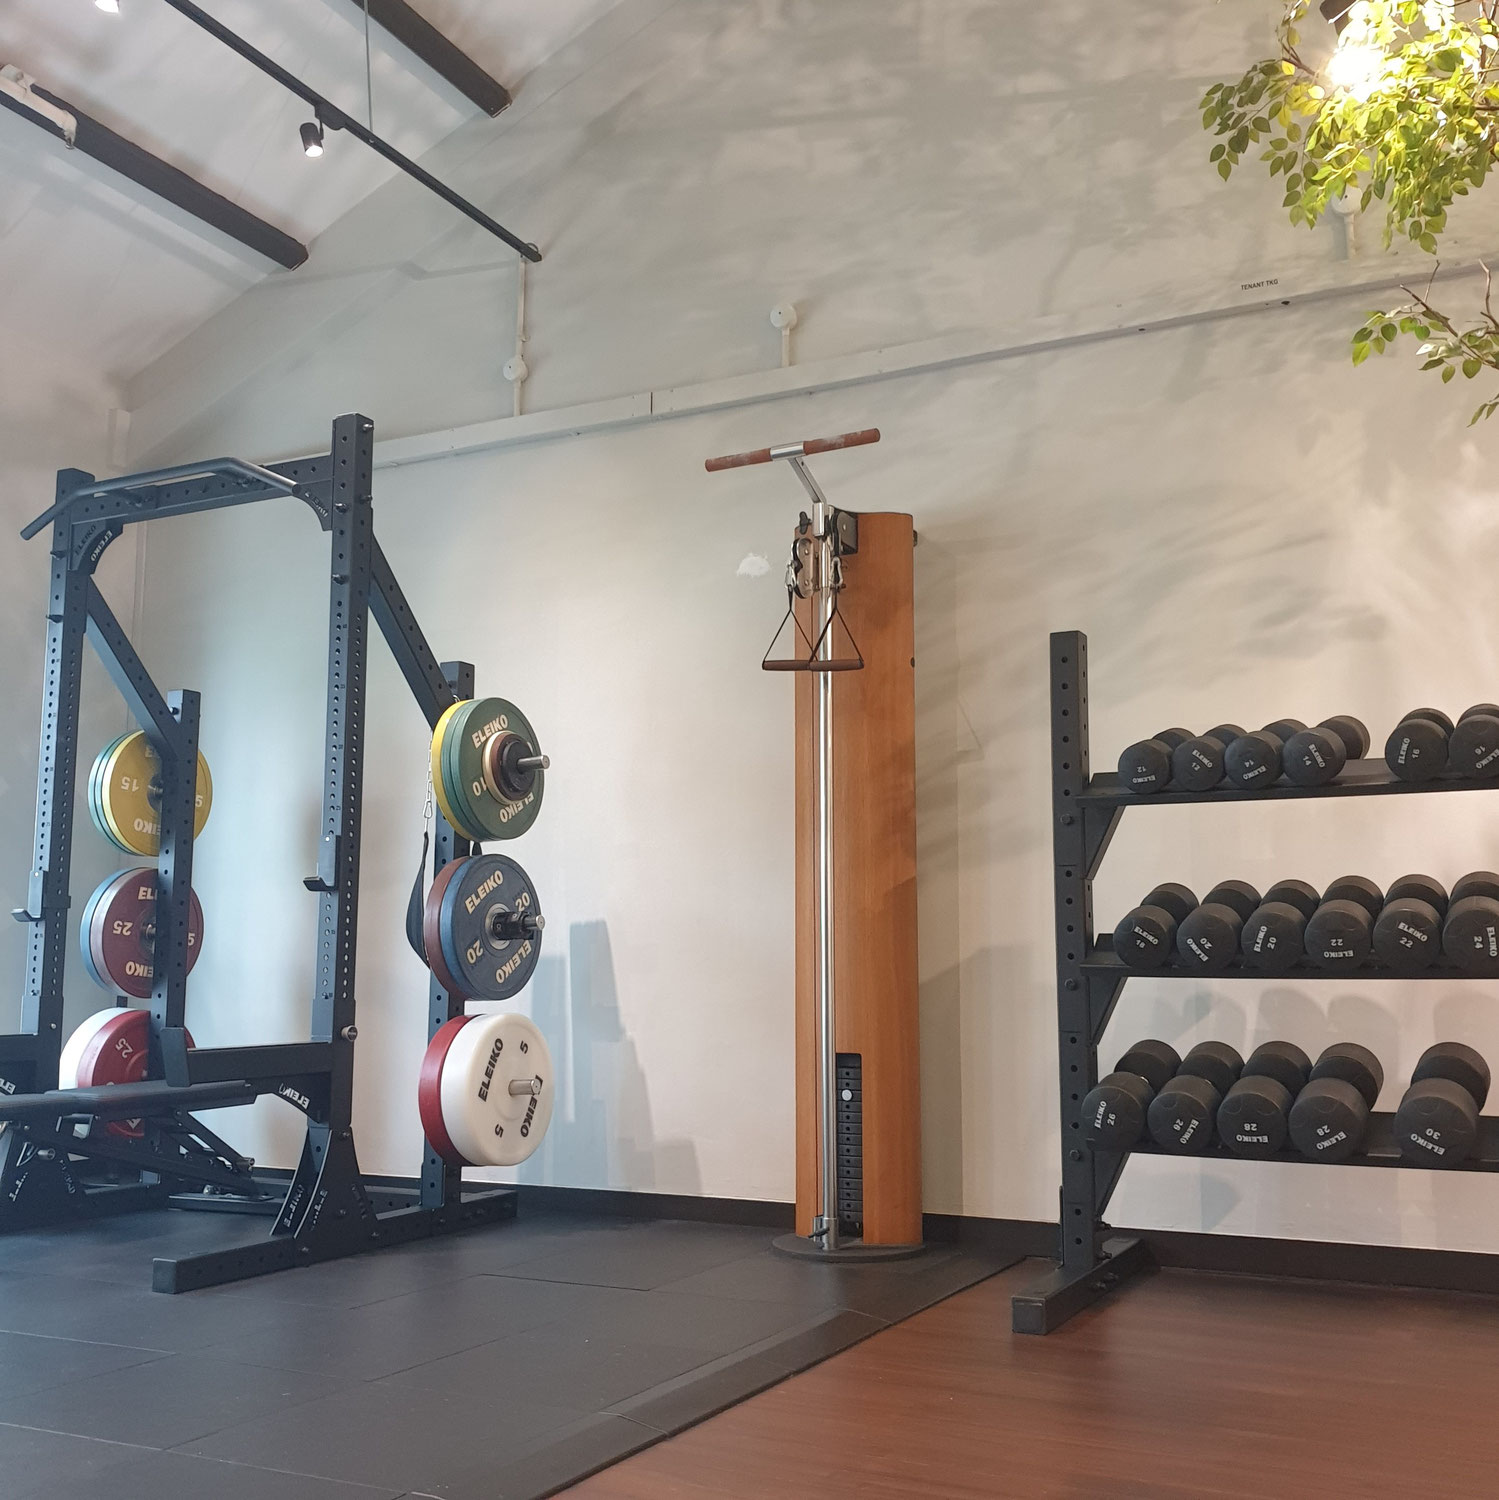 Most Gym Routines Are Wrong and What You Should Be Doing Instead